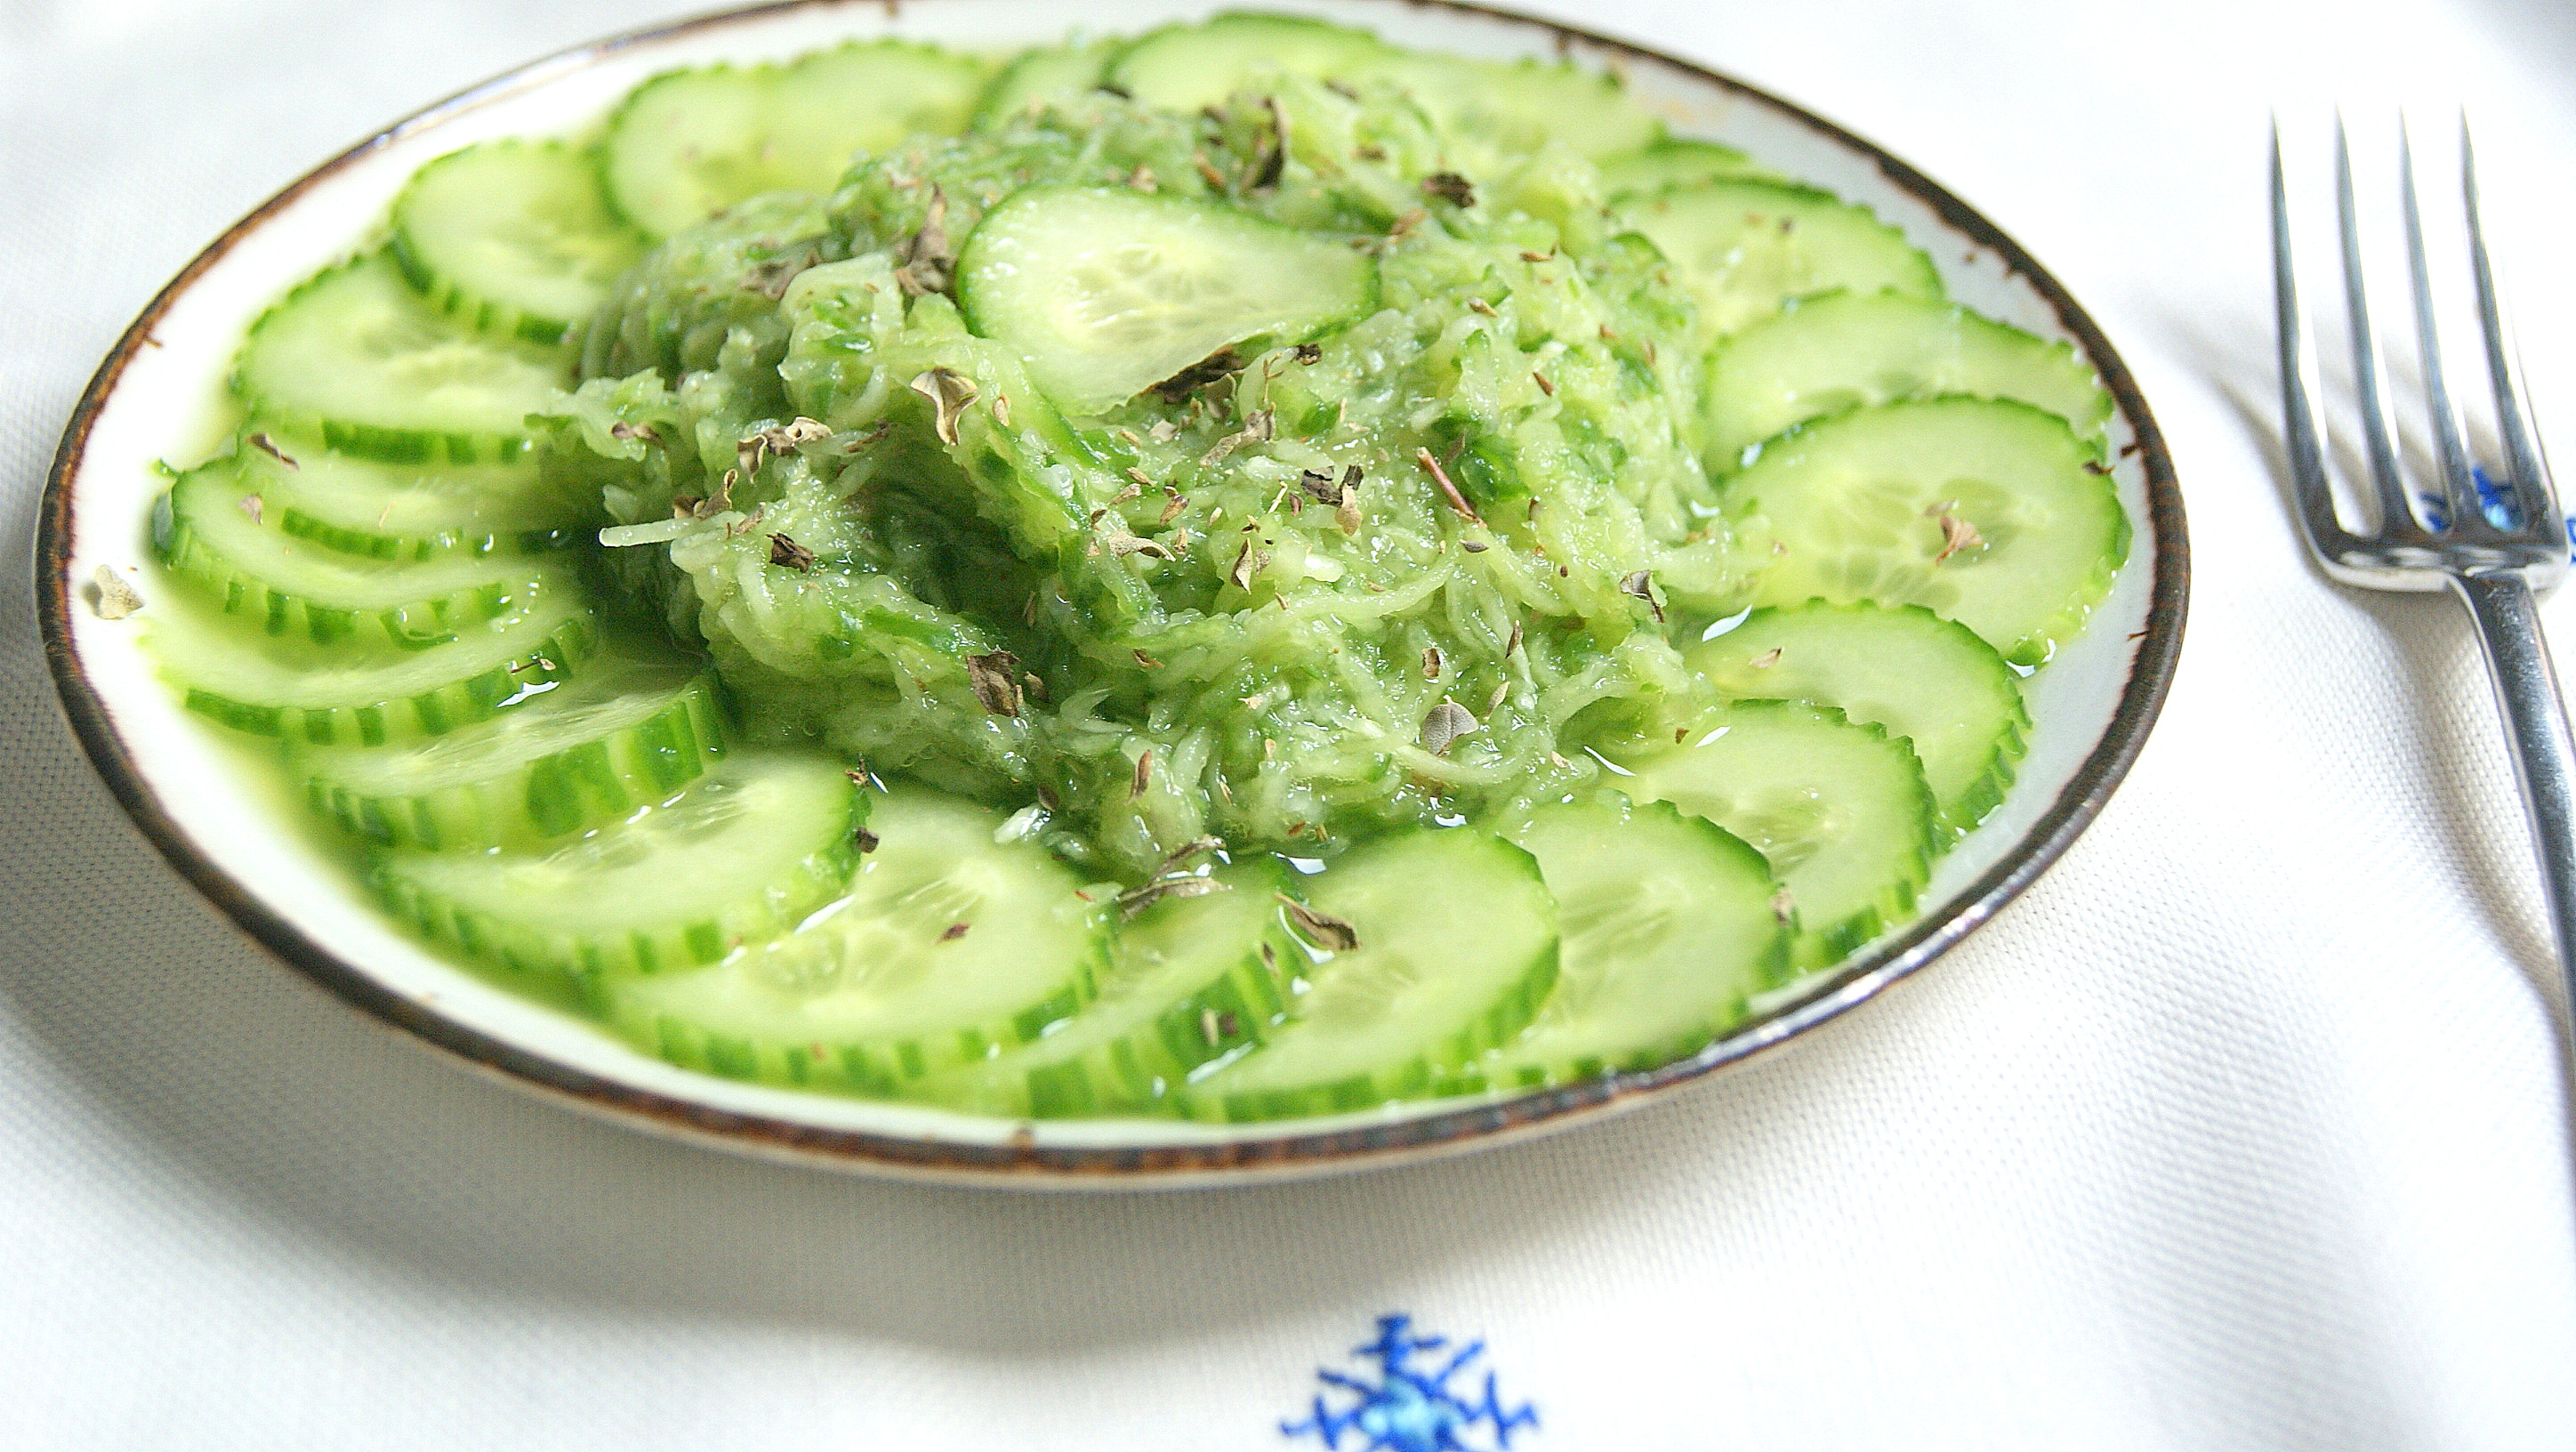 Moroccan bendy cucumber salad with oregano in grated and sliced form